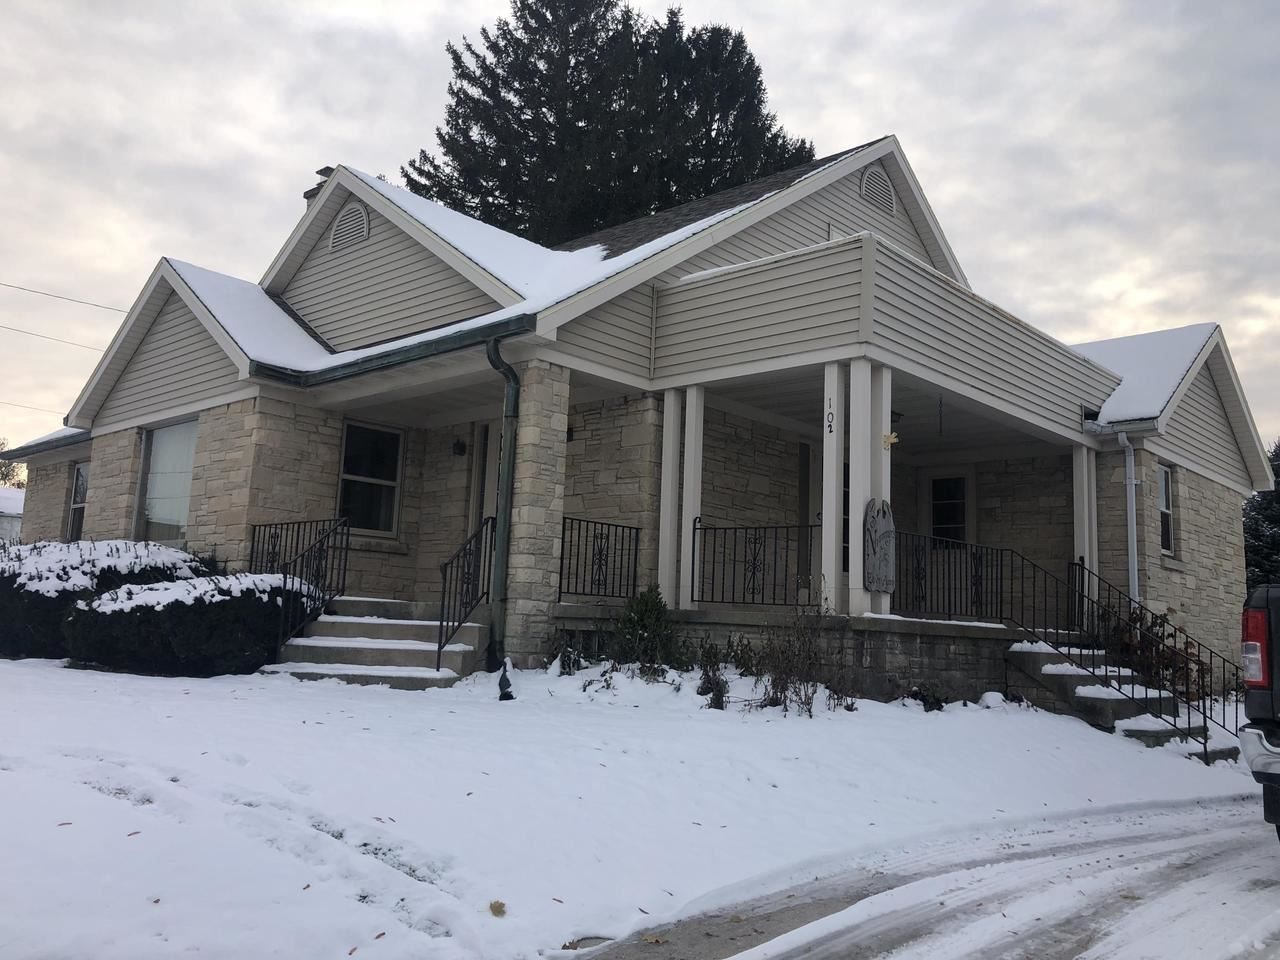 102 S 4th Ave, Saint Nazianz, WI 54232 - MLS#: 1667461